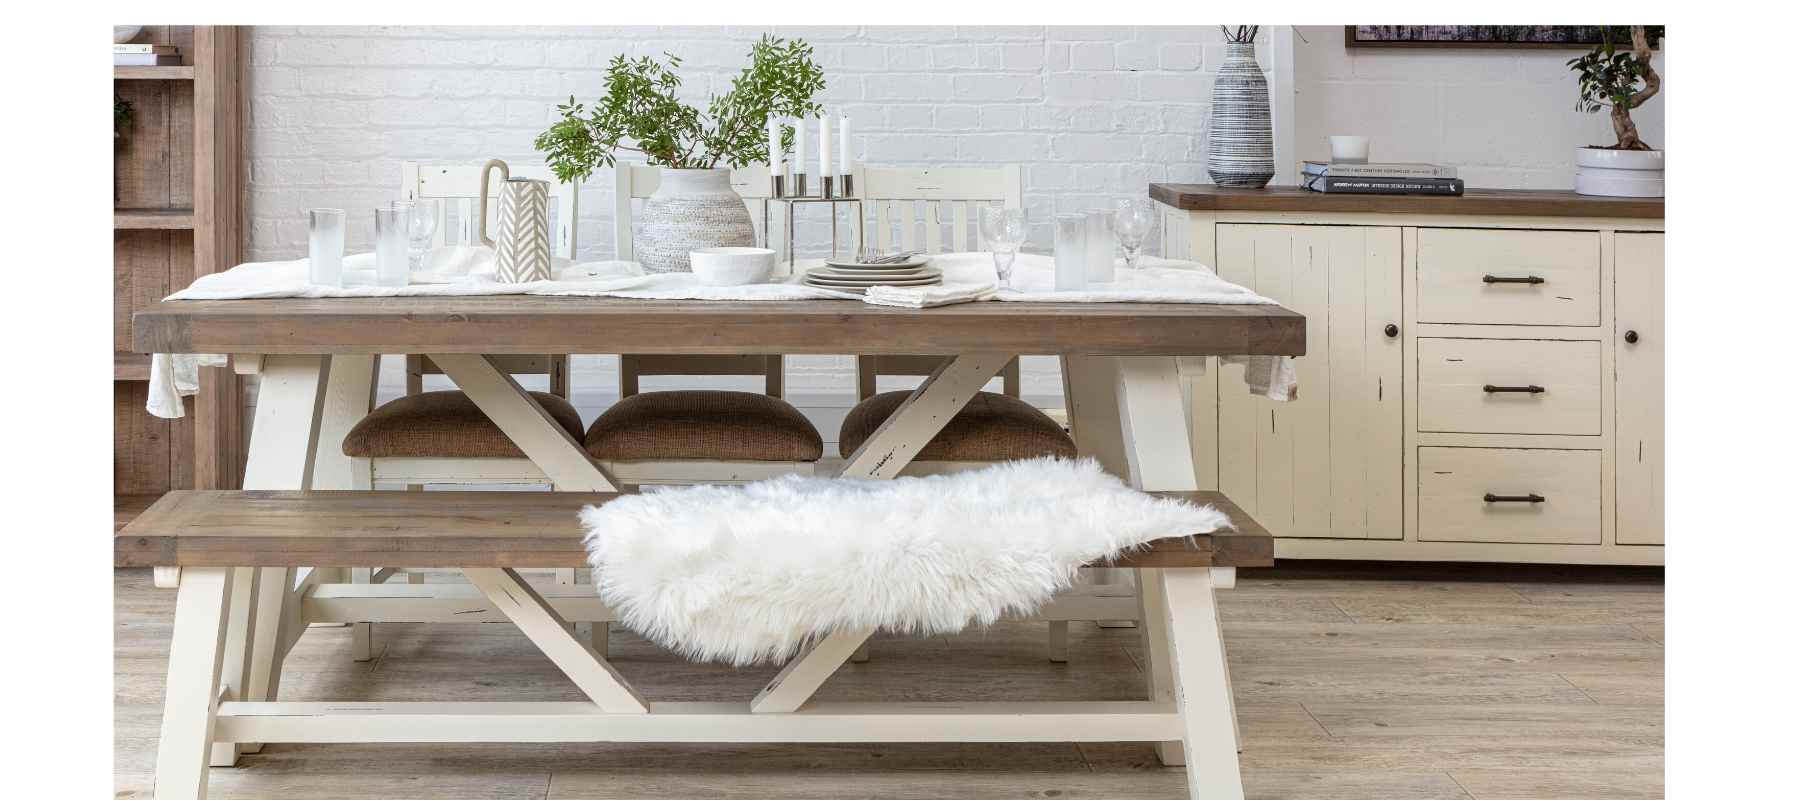 Farmhouse style wooden table with white legs and matching wooden dining bench